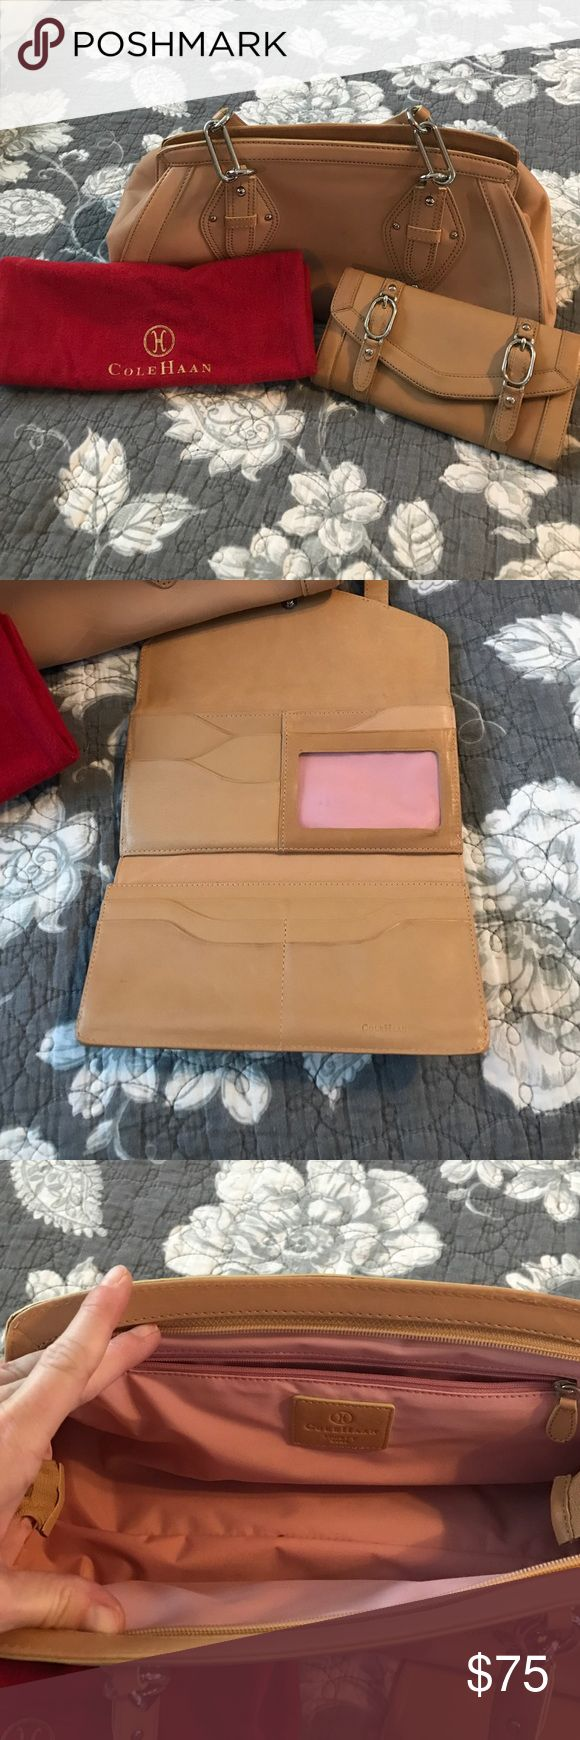 Cole Haan purse and wallet set with dust bag Really nice condition. Cole Haan Bags Shoulder Bags